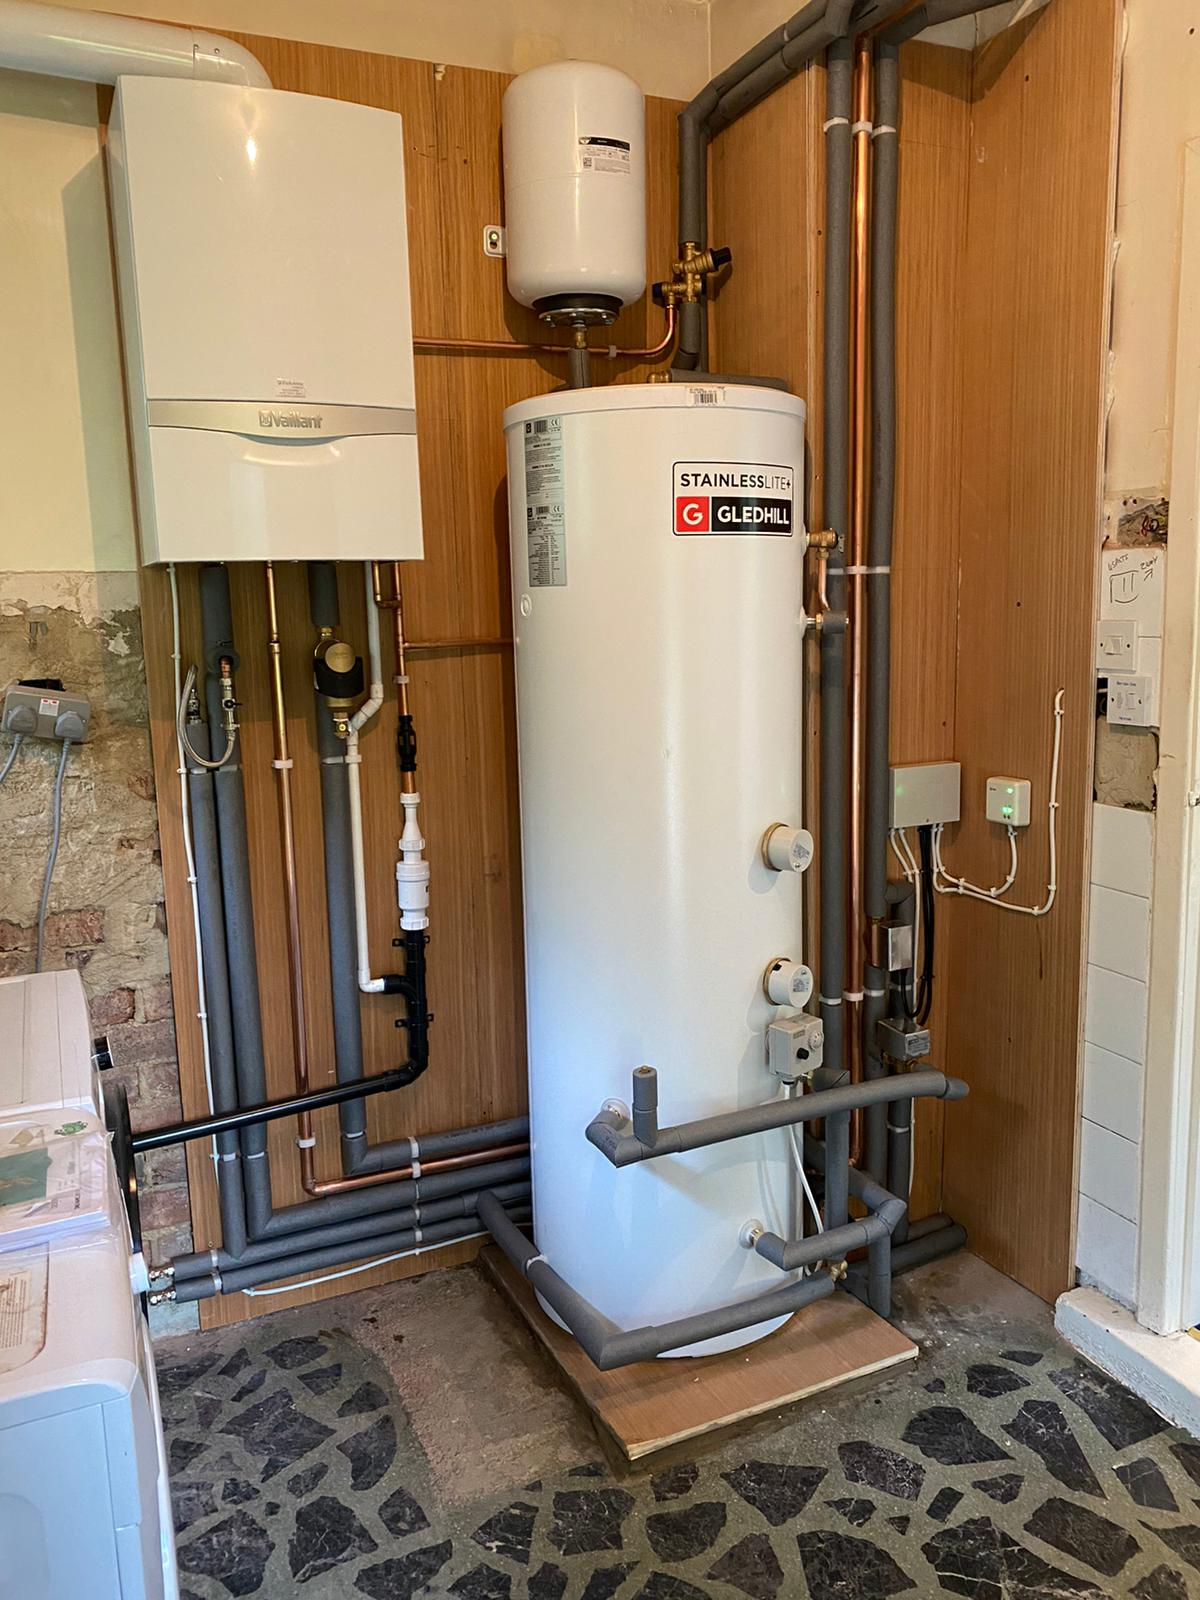 Complete heating system fitted including Vaillant Ecotec Plus, Gledhill unvented cylinder with remote expansion vessel, system zone valves and wiring. all pipework clipped to plywood back and covered in pipe insulation where appropriate